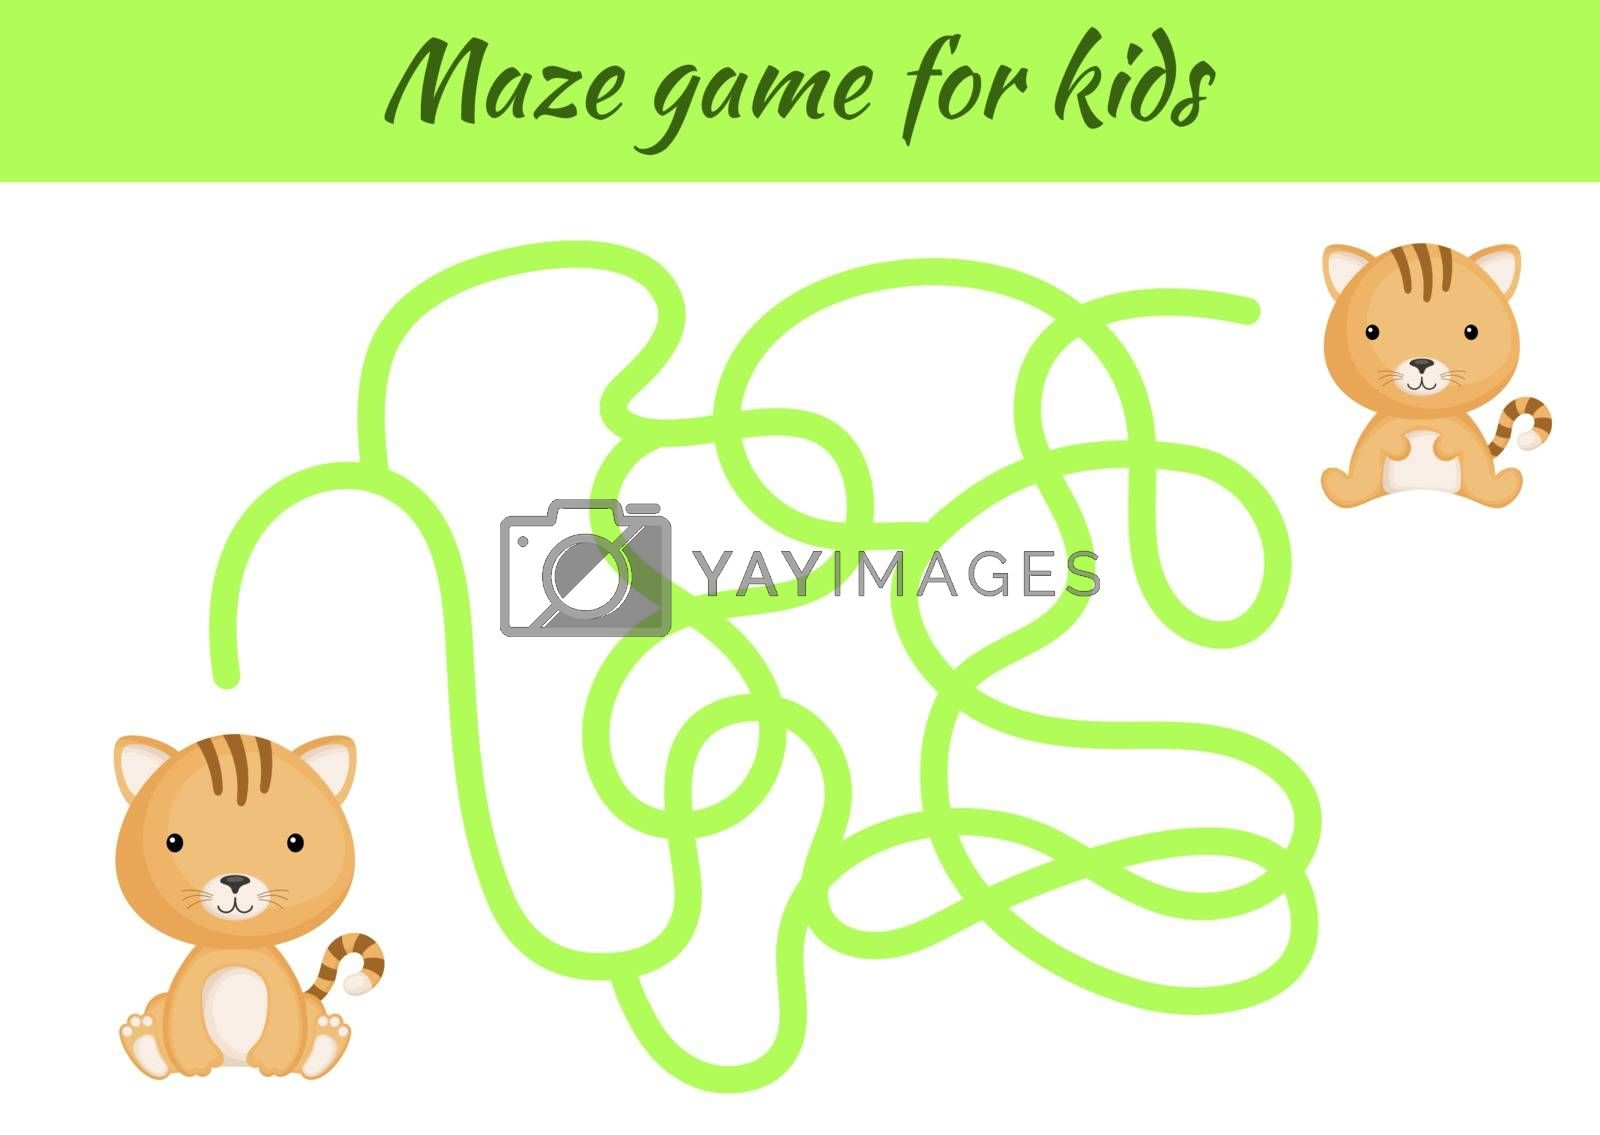 Funny maze or labyrinth game for kids. Help mother find path to baby. Education developing worksheet. Activity page. Cartoon cat characters. Riddle for preschool. Color vector stock illustration.